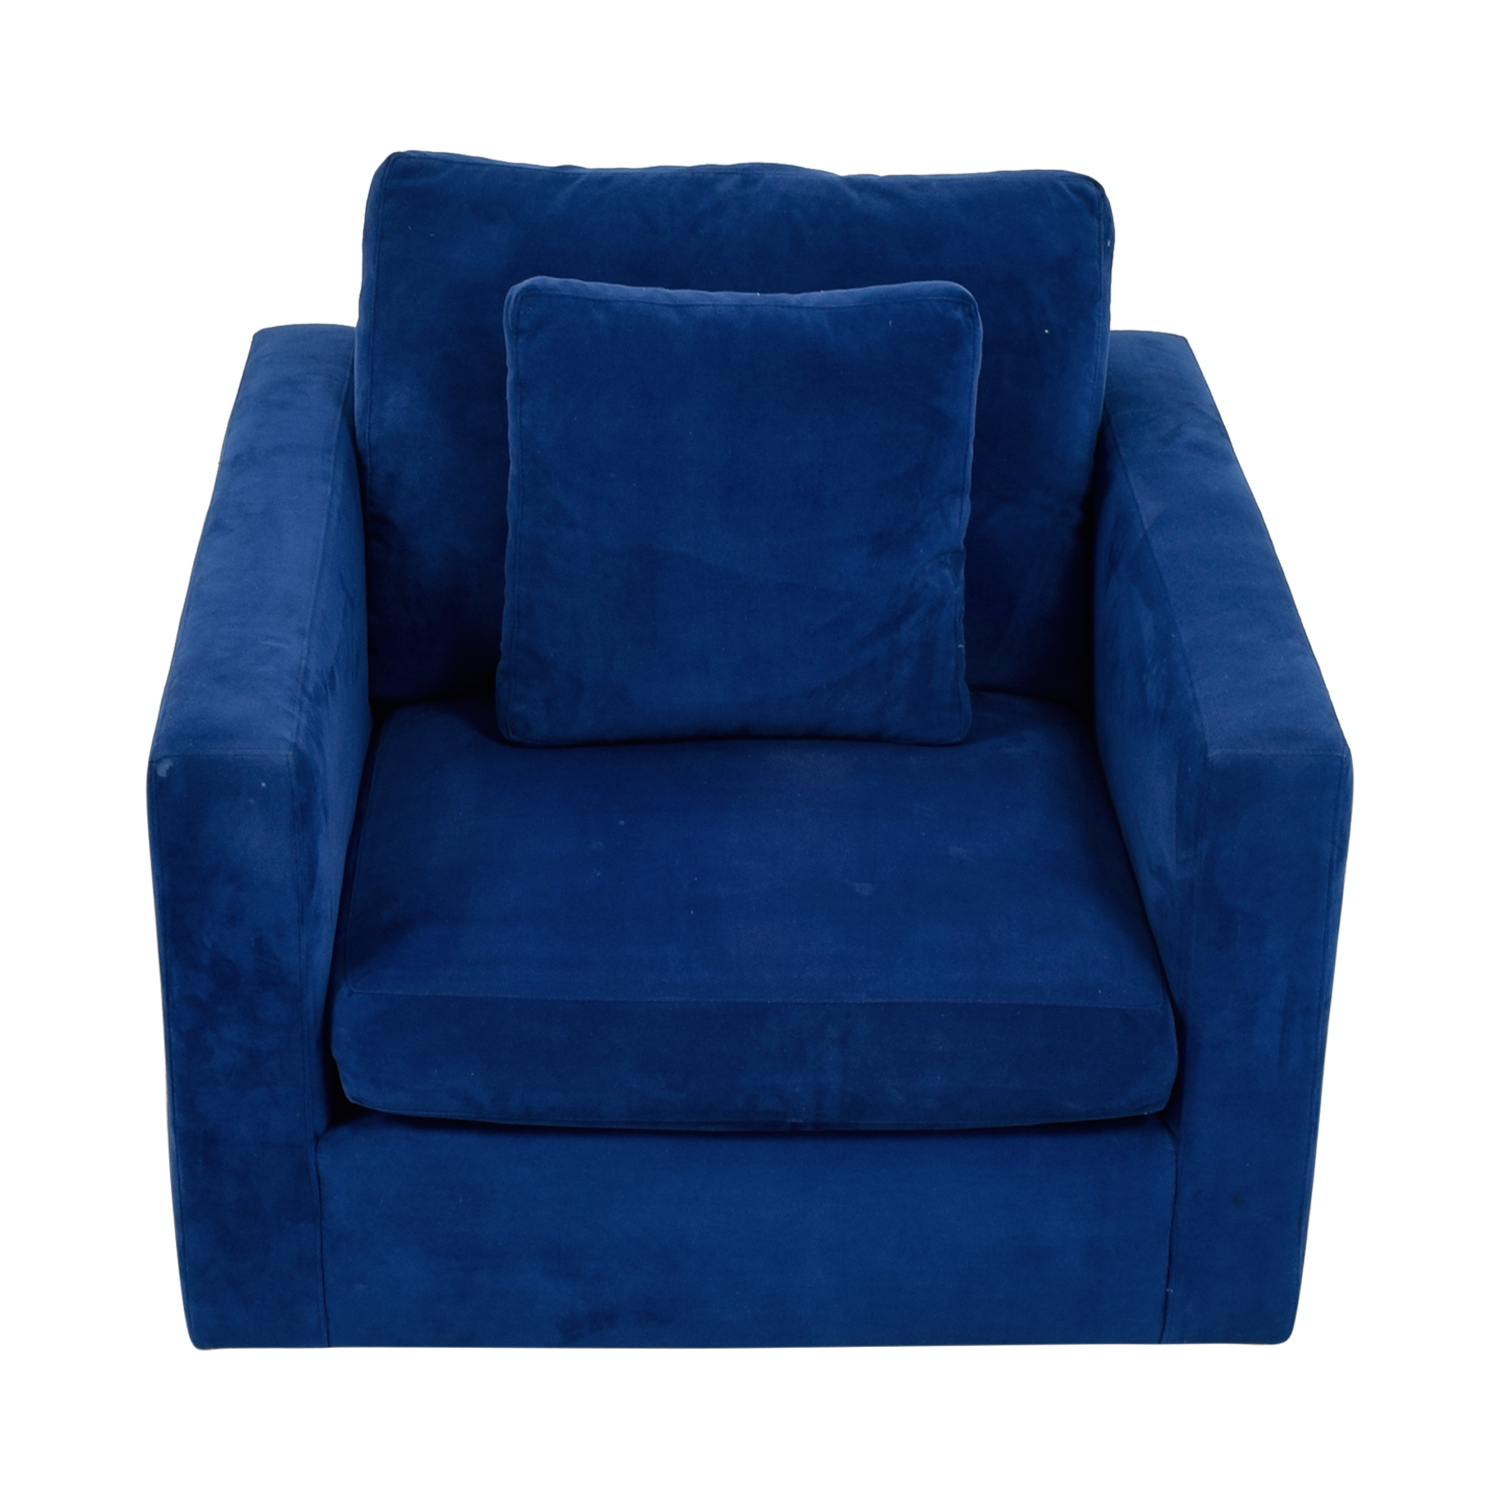 Blue Arm Chair with Toss Pillow